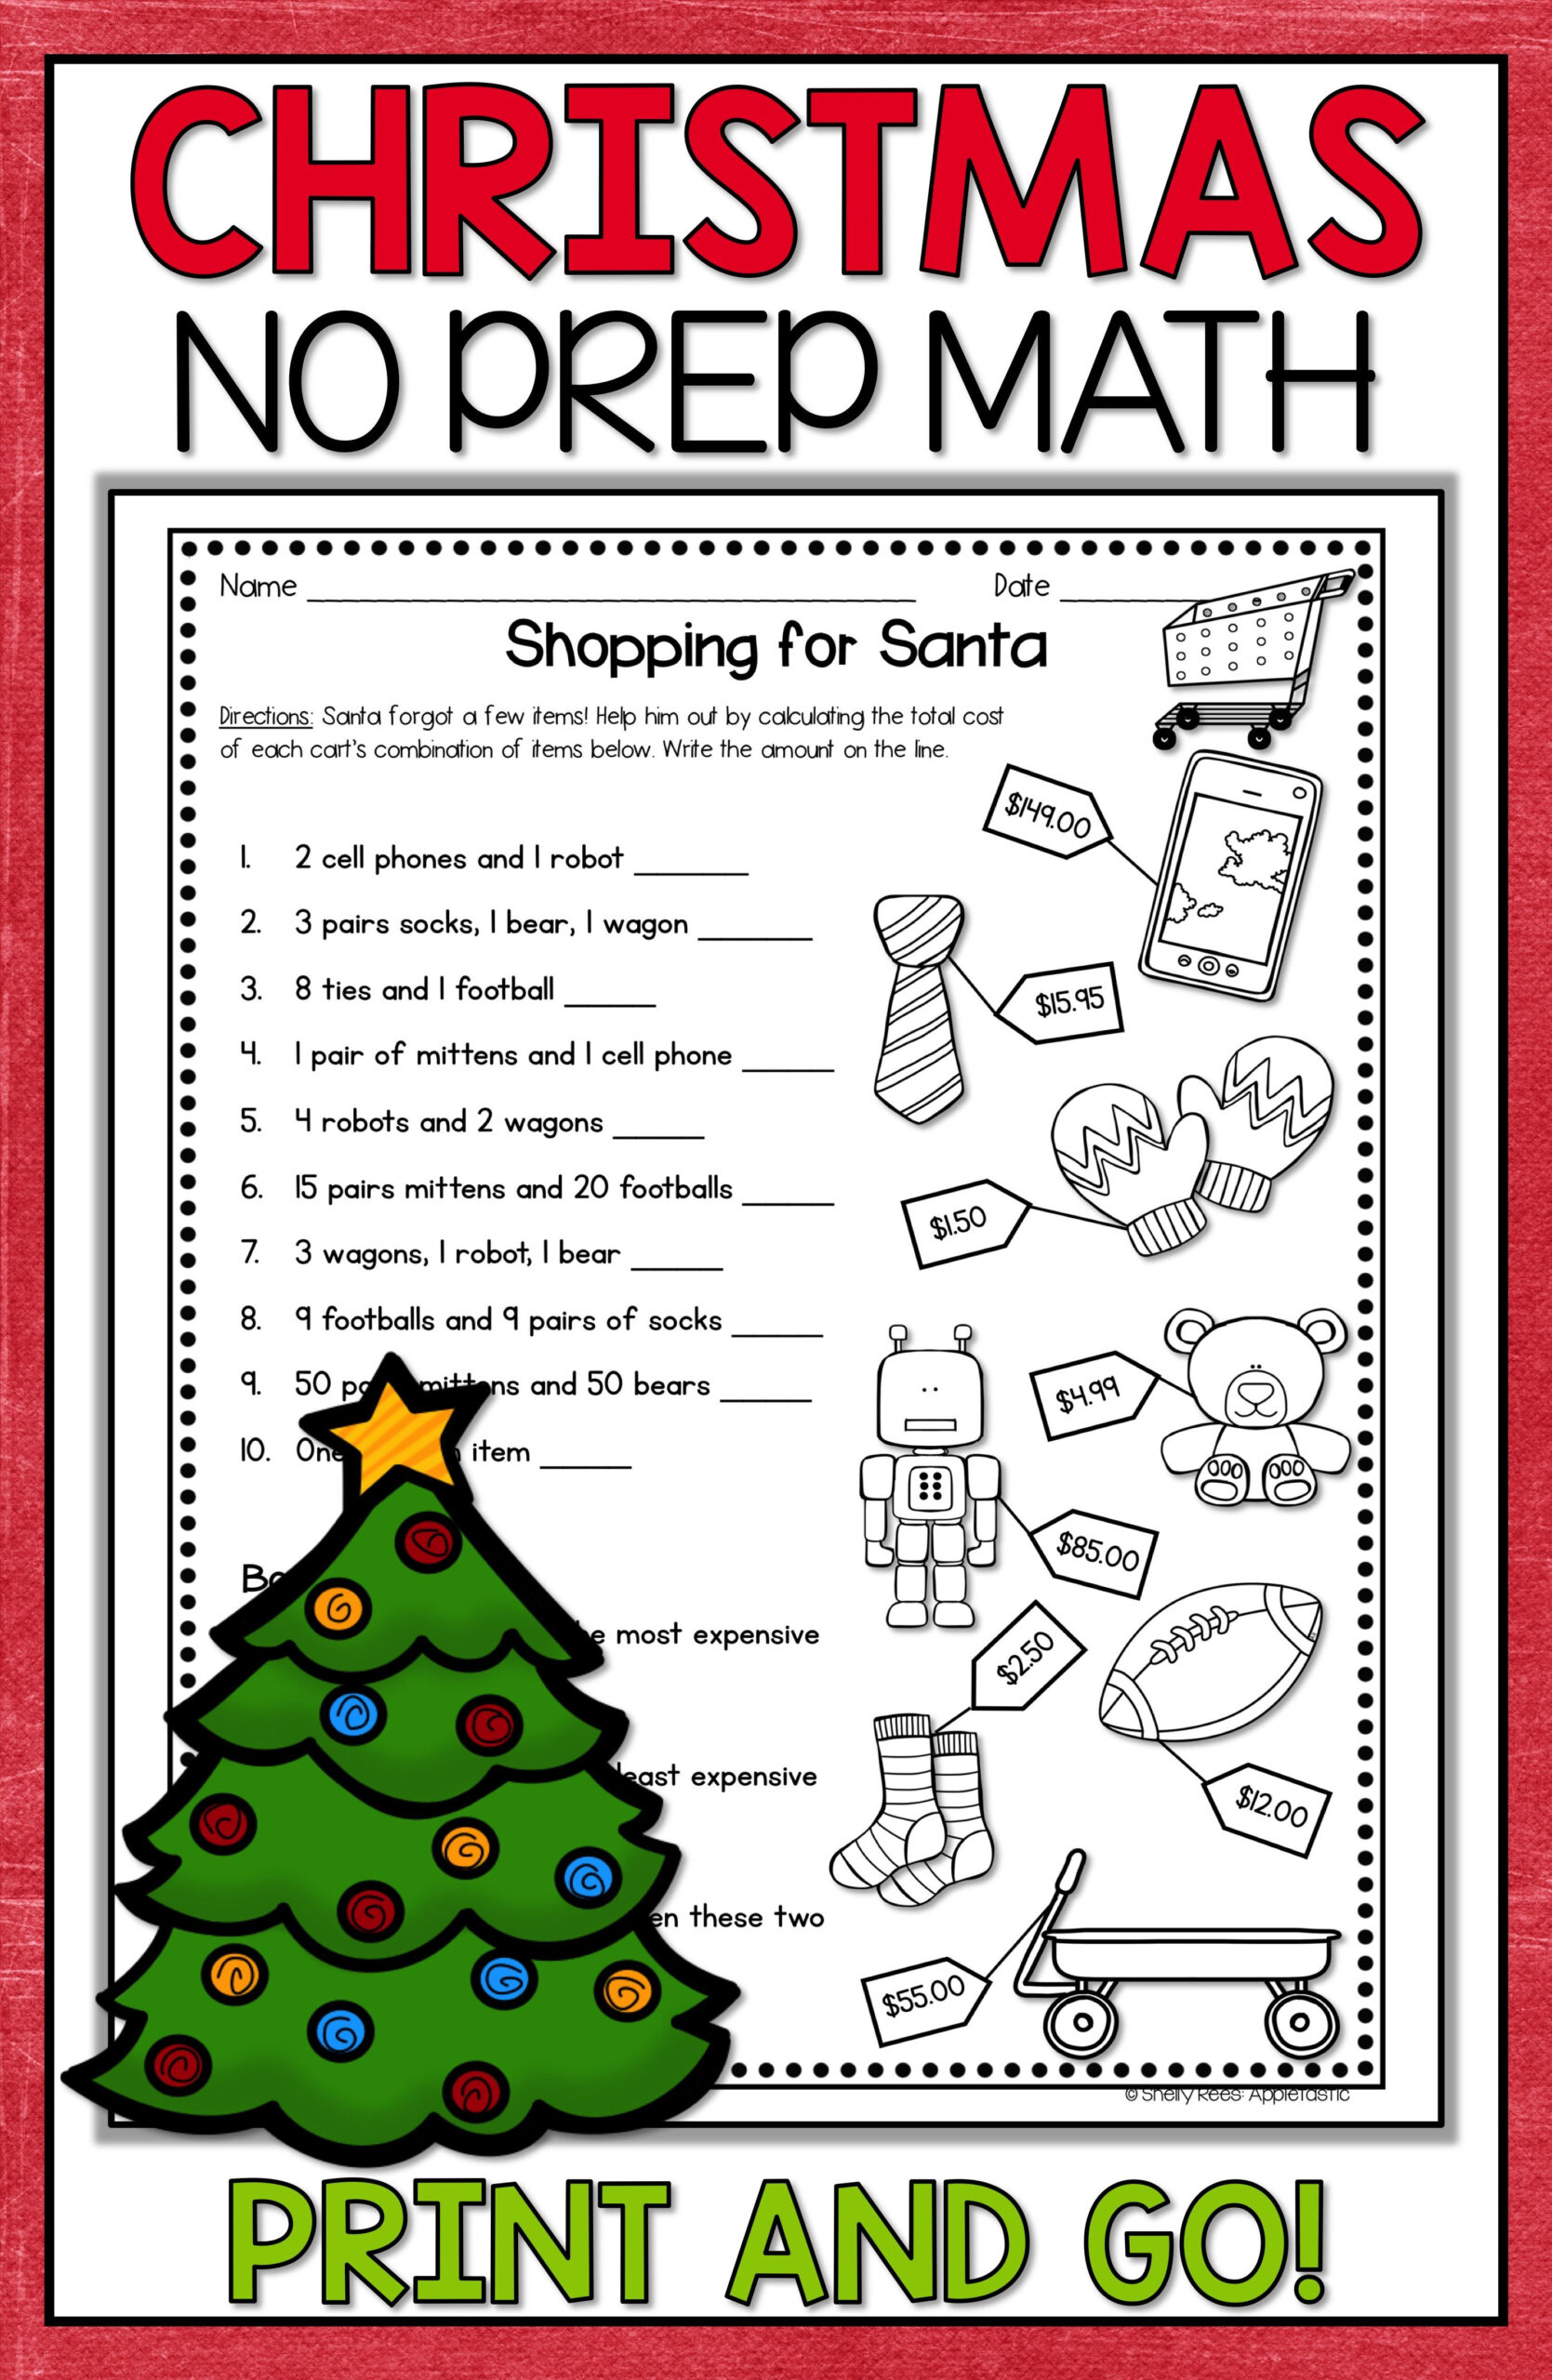 Christmas Math Worksheets | Christmas Math Worksheets